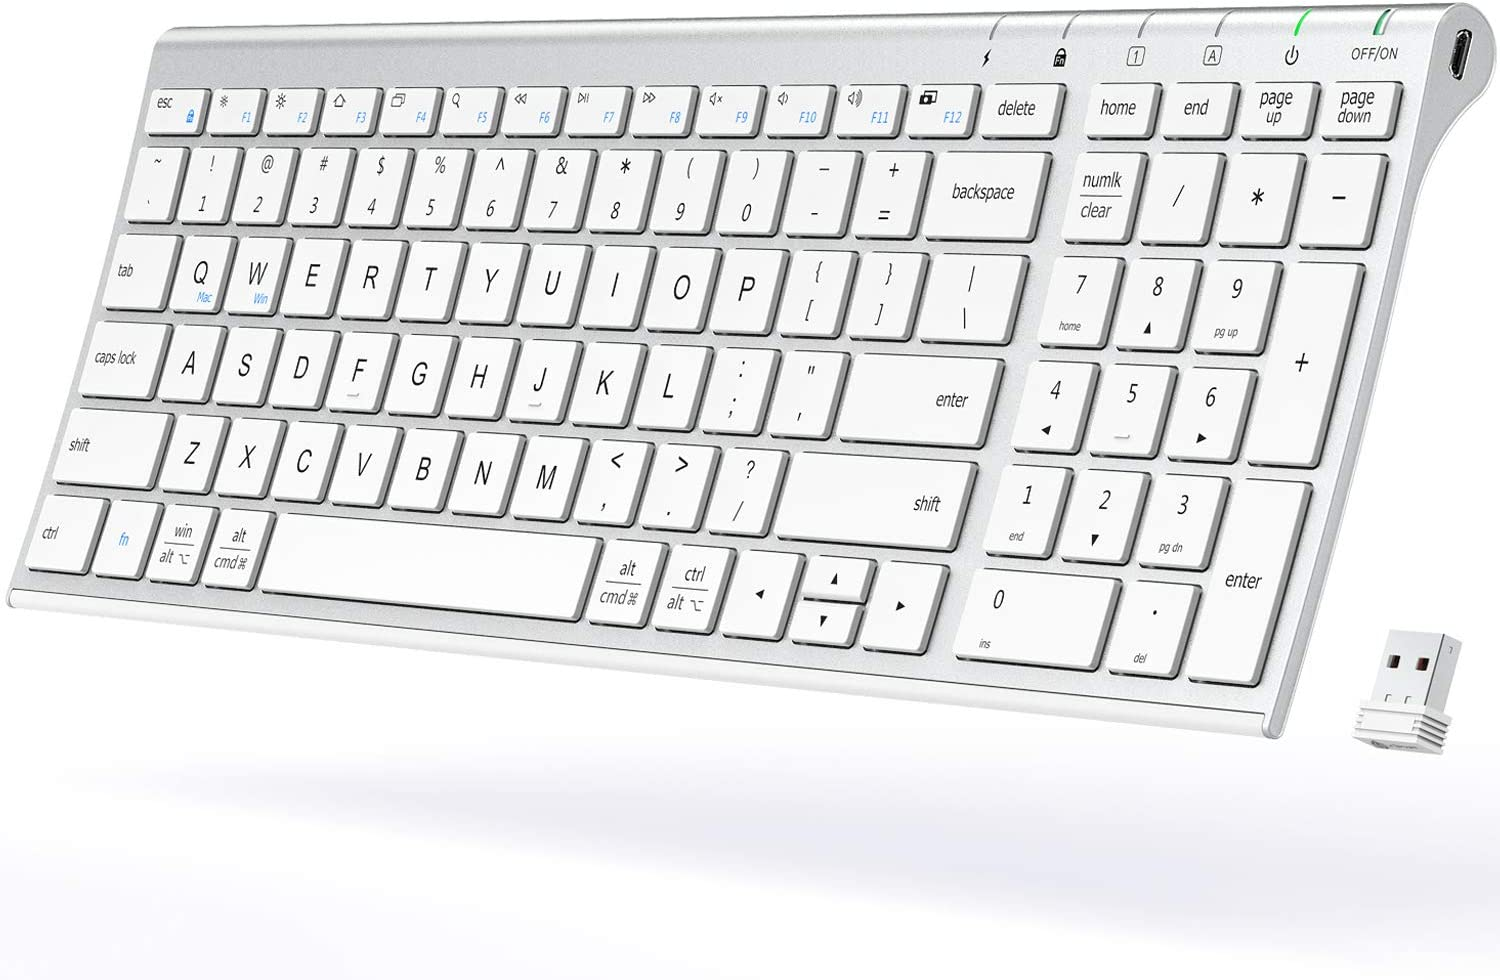 Wireless Keyboard - iClever GKA22S Rechargeable Keyboard with Number Pad, Full-Size Stainless Steel Ultra Slim Keyboard, 2.4G Stable Connection Wireless Keyboard for iMac, Mackbook, PC, Laptop